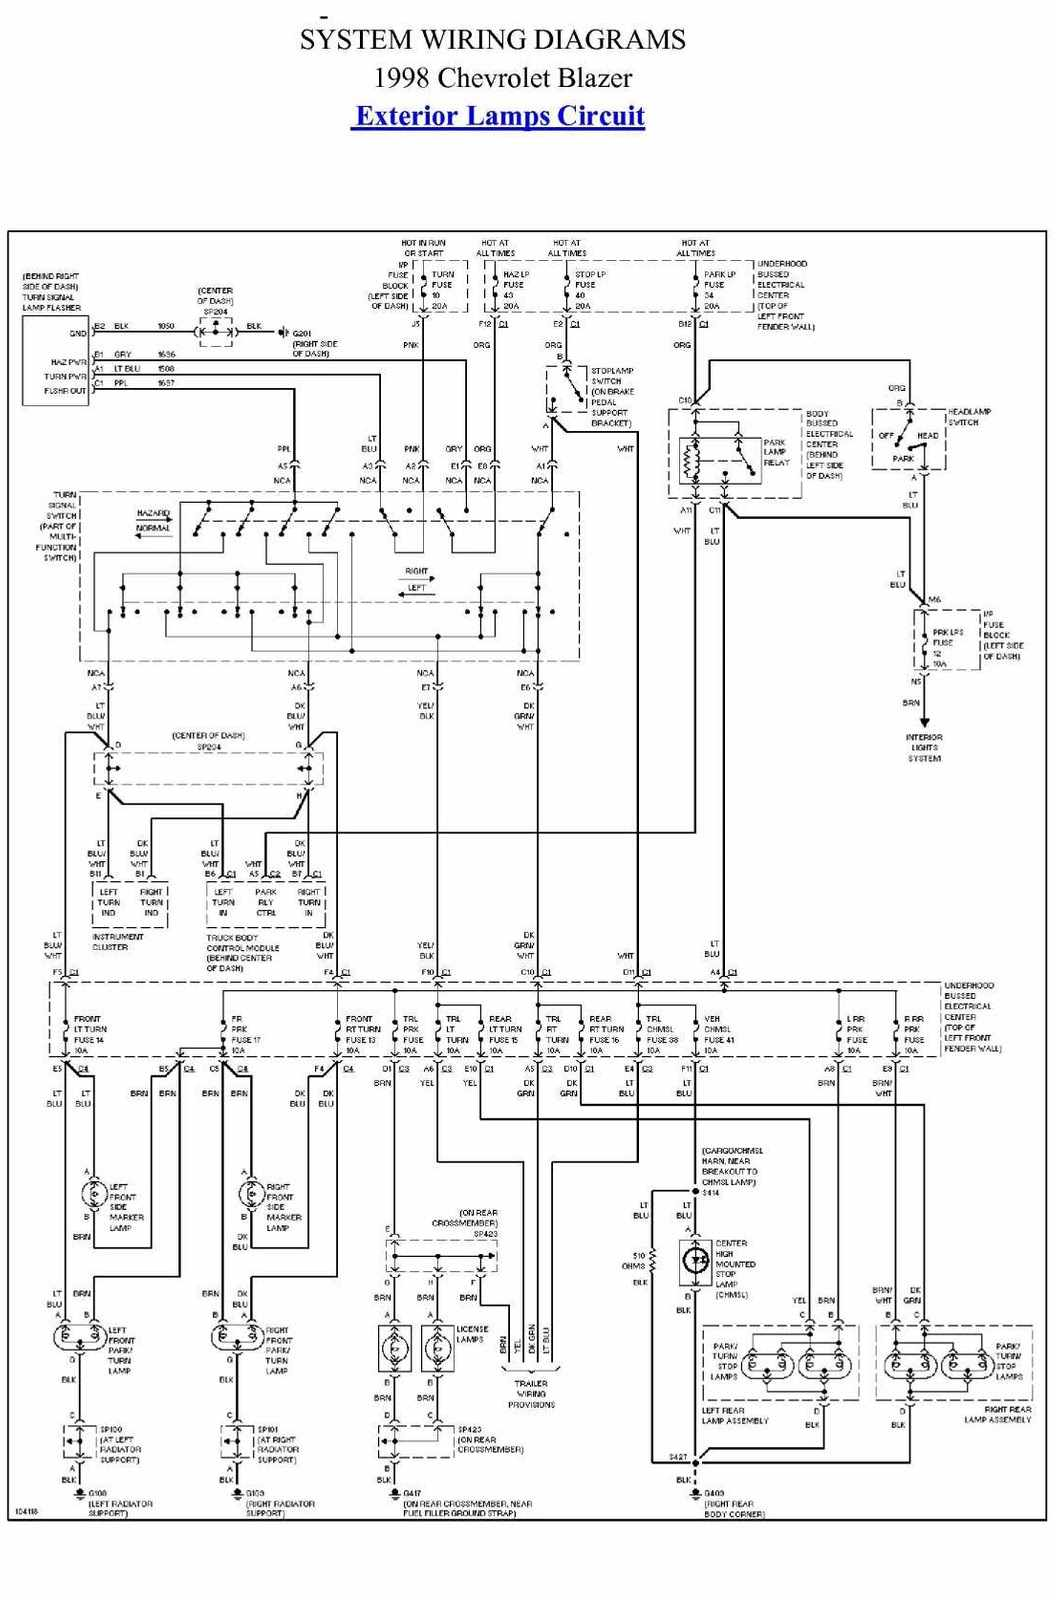 Exterior%2BLamp%2BCircuit%2BDiagram%2BOf%2B1998%2BChevrolet%2BBlazer wiring diagram for brake switch connector for a 1998 chevy  at creativeand.co